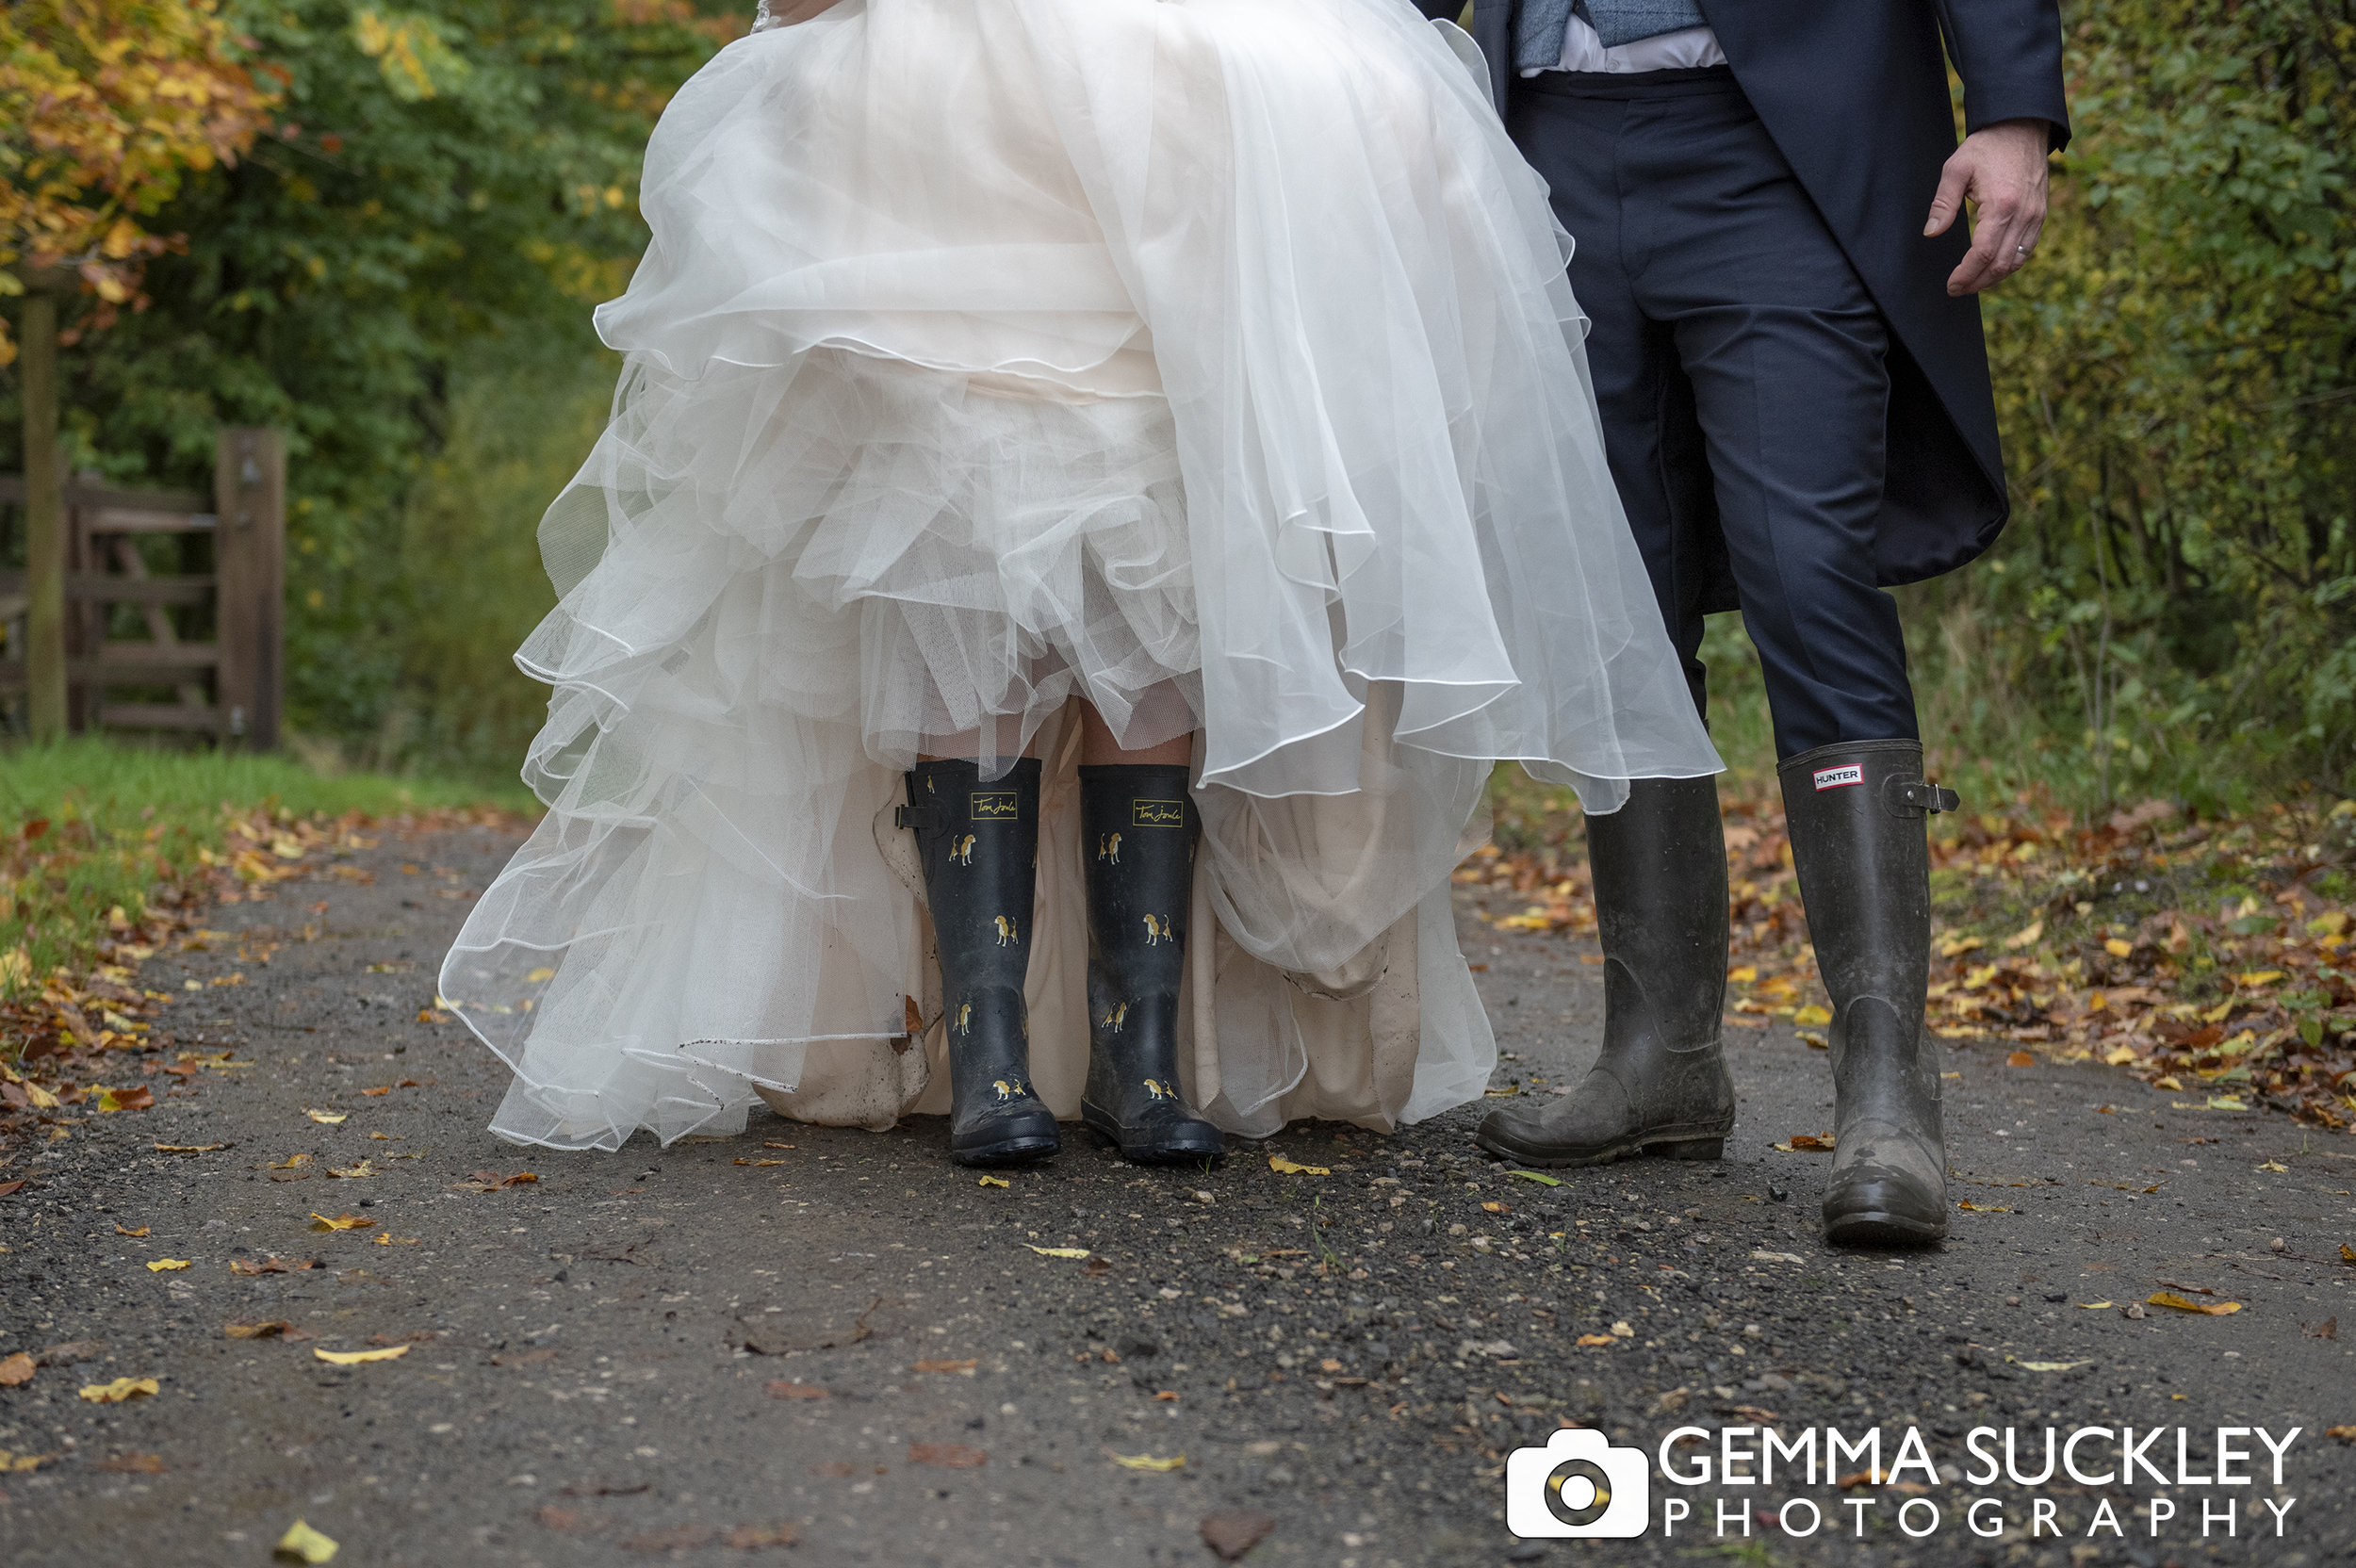 close up wedding photo of bride and groom wellies at the out barn in Clitheroe